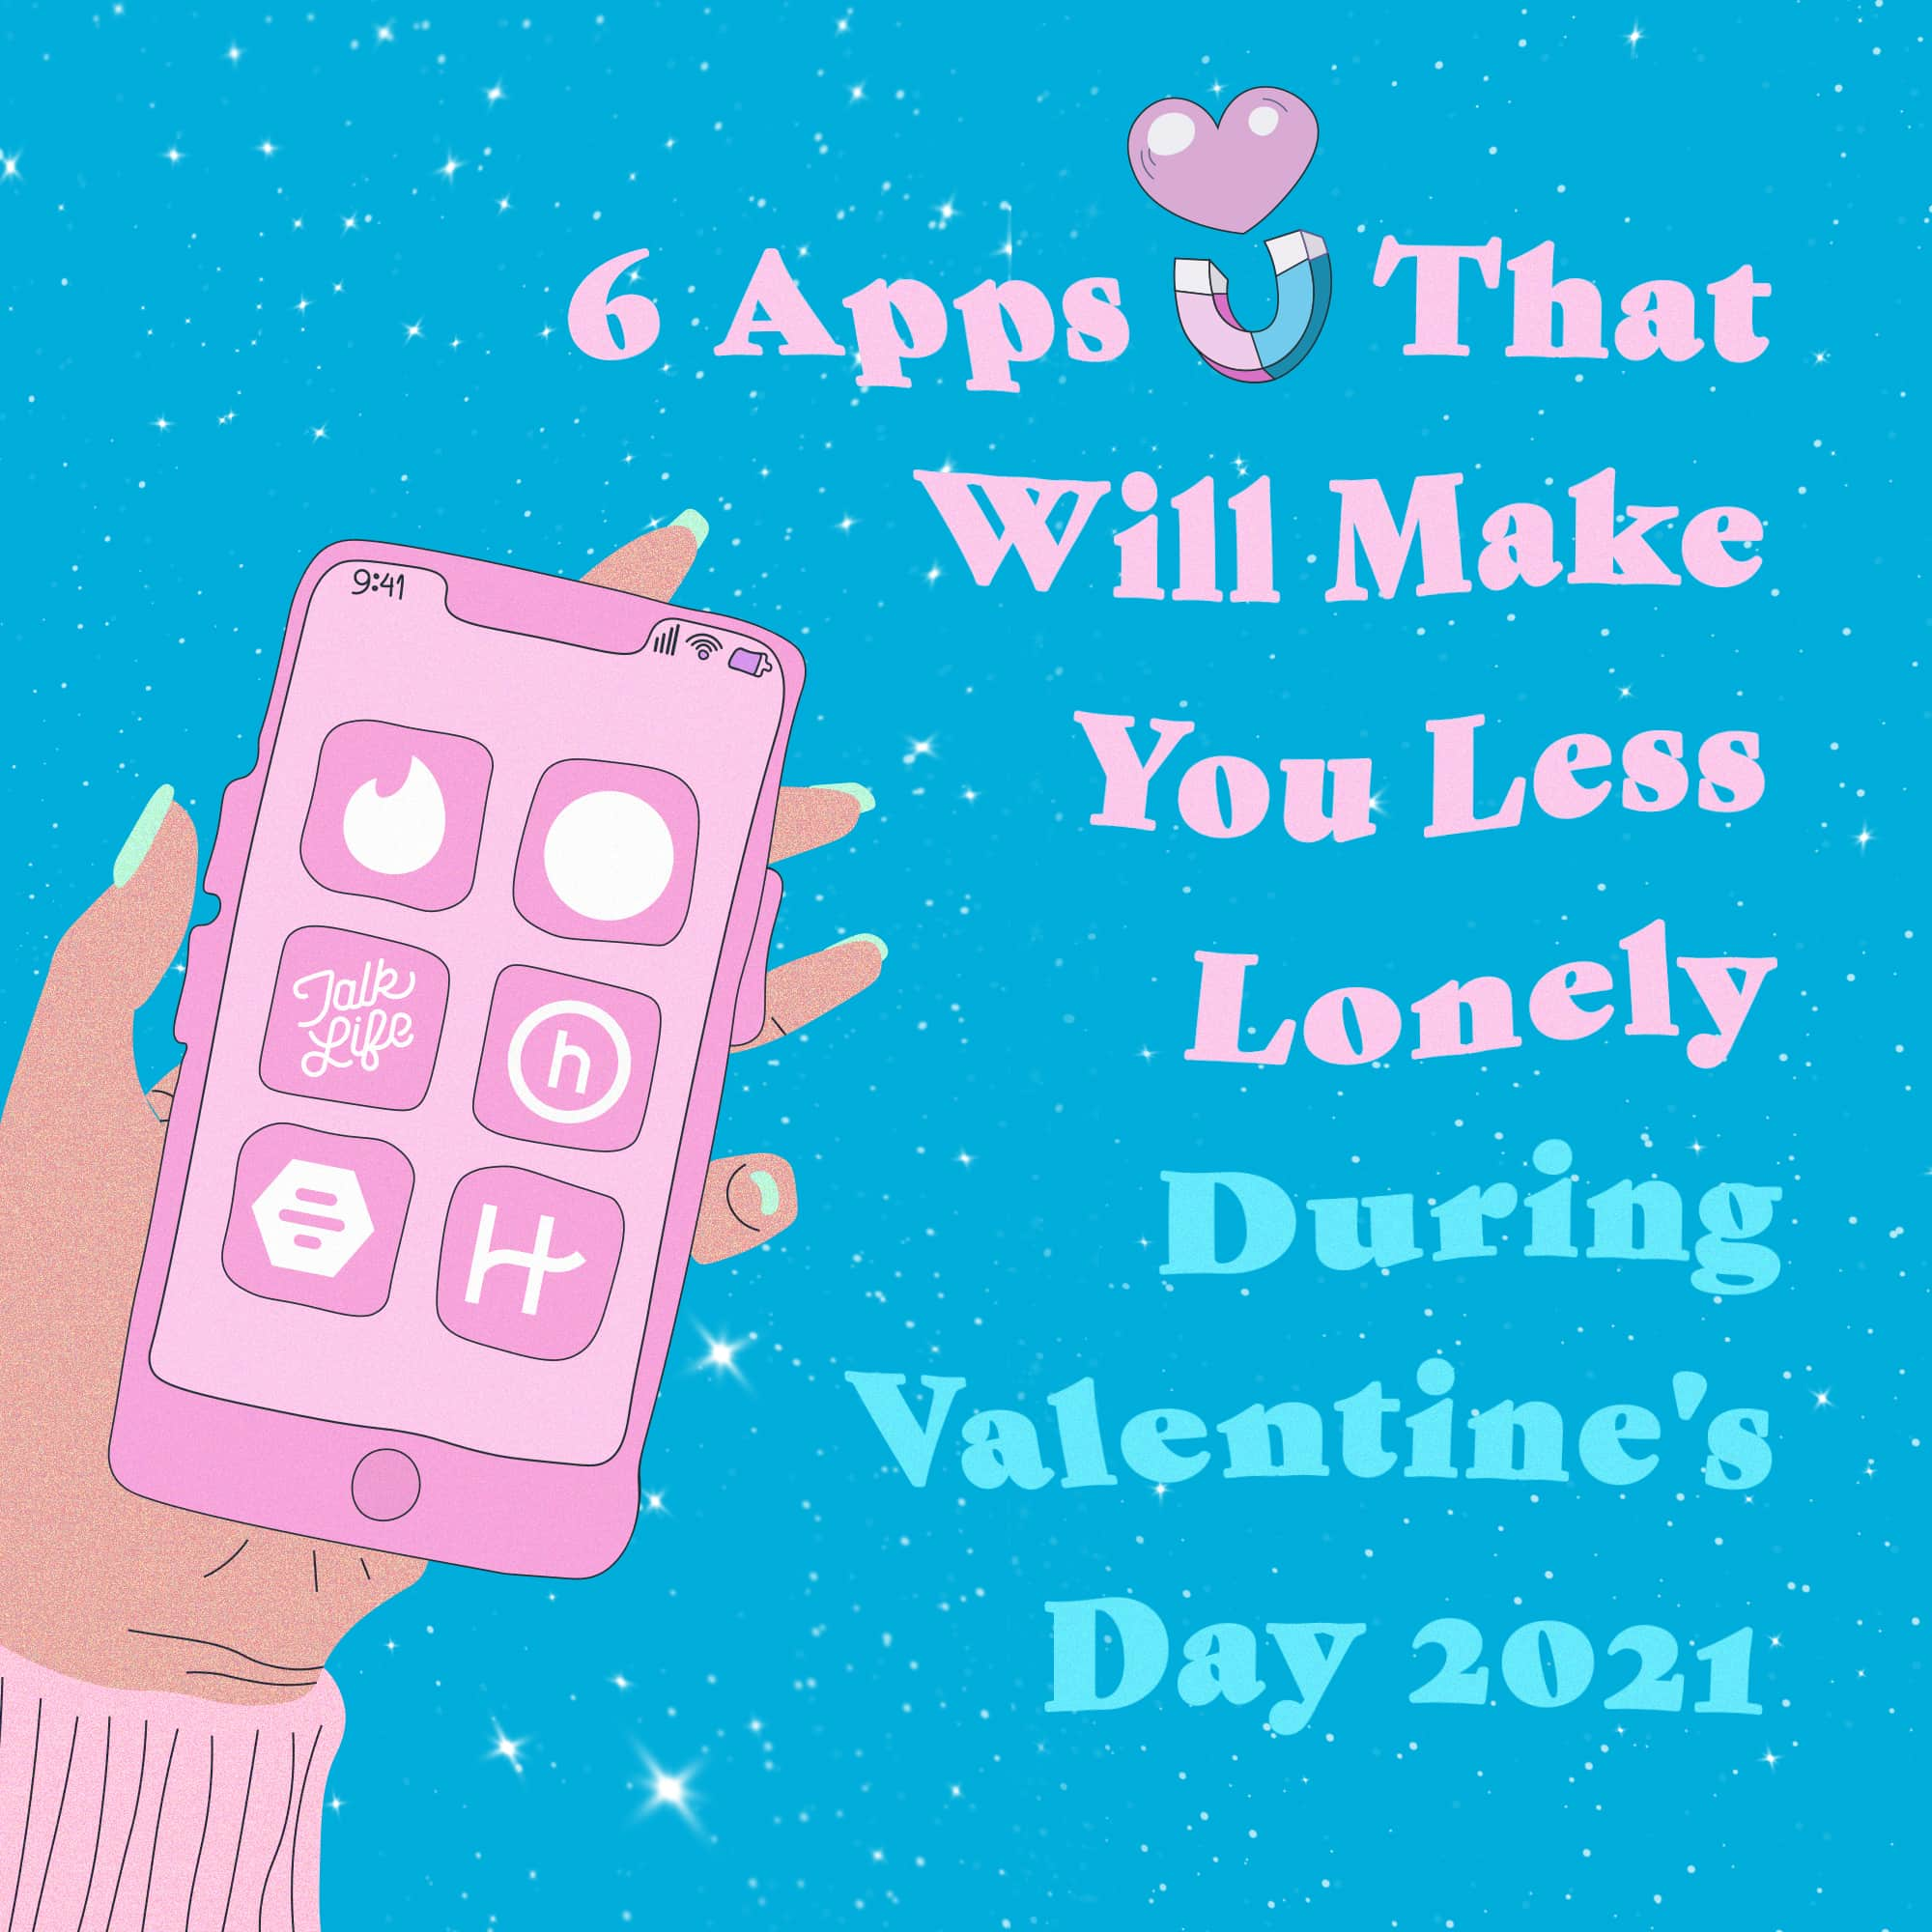 6 Apps That Will Make You Less Lonely During Valentine's Day 2021